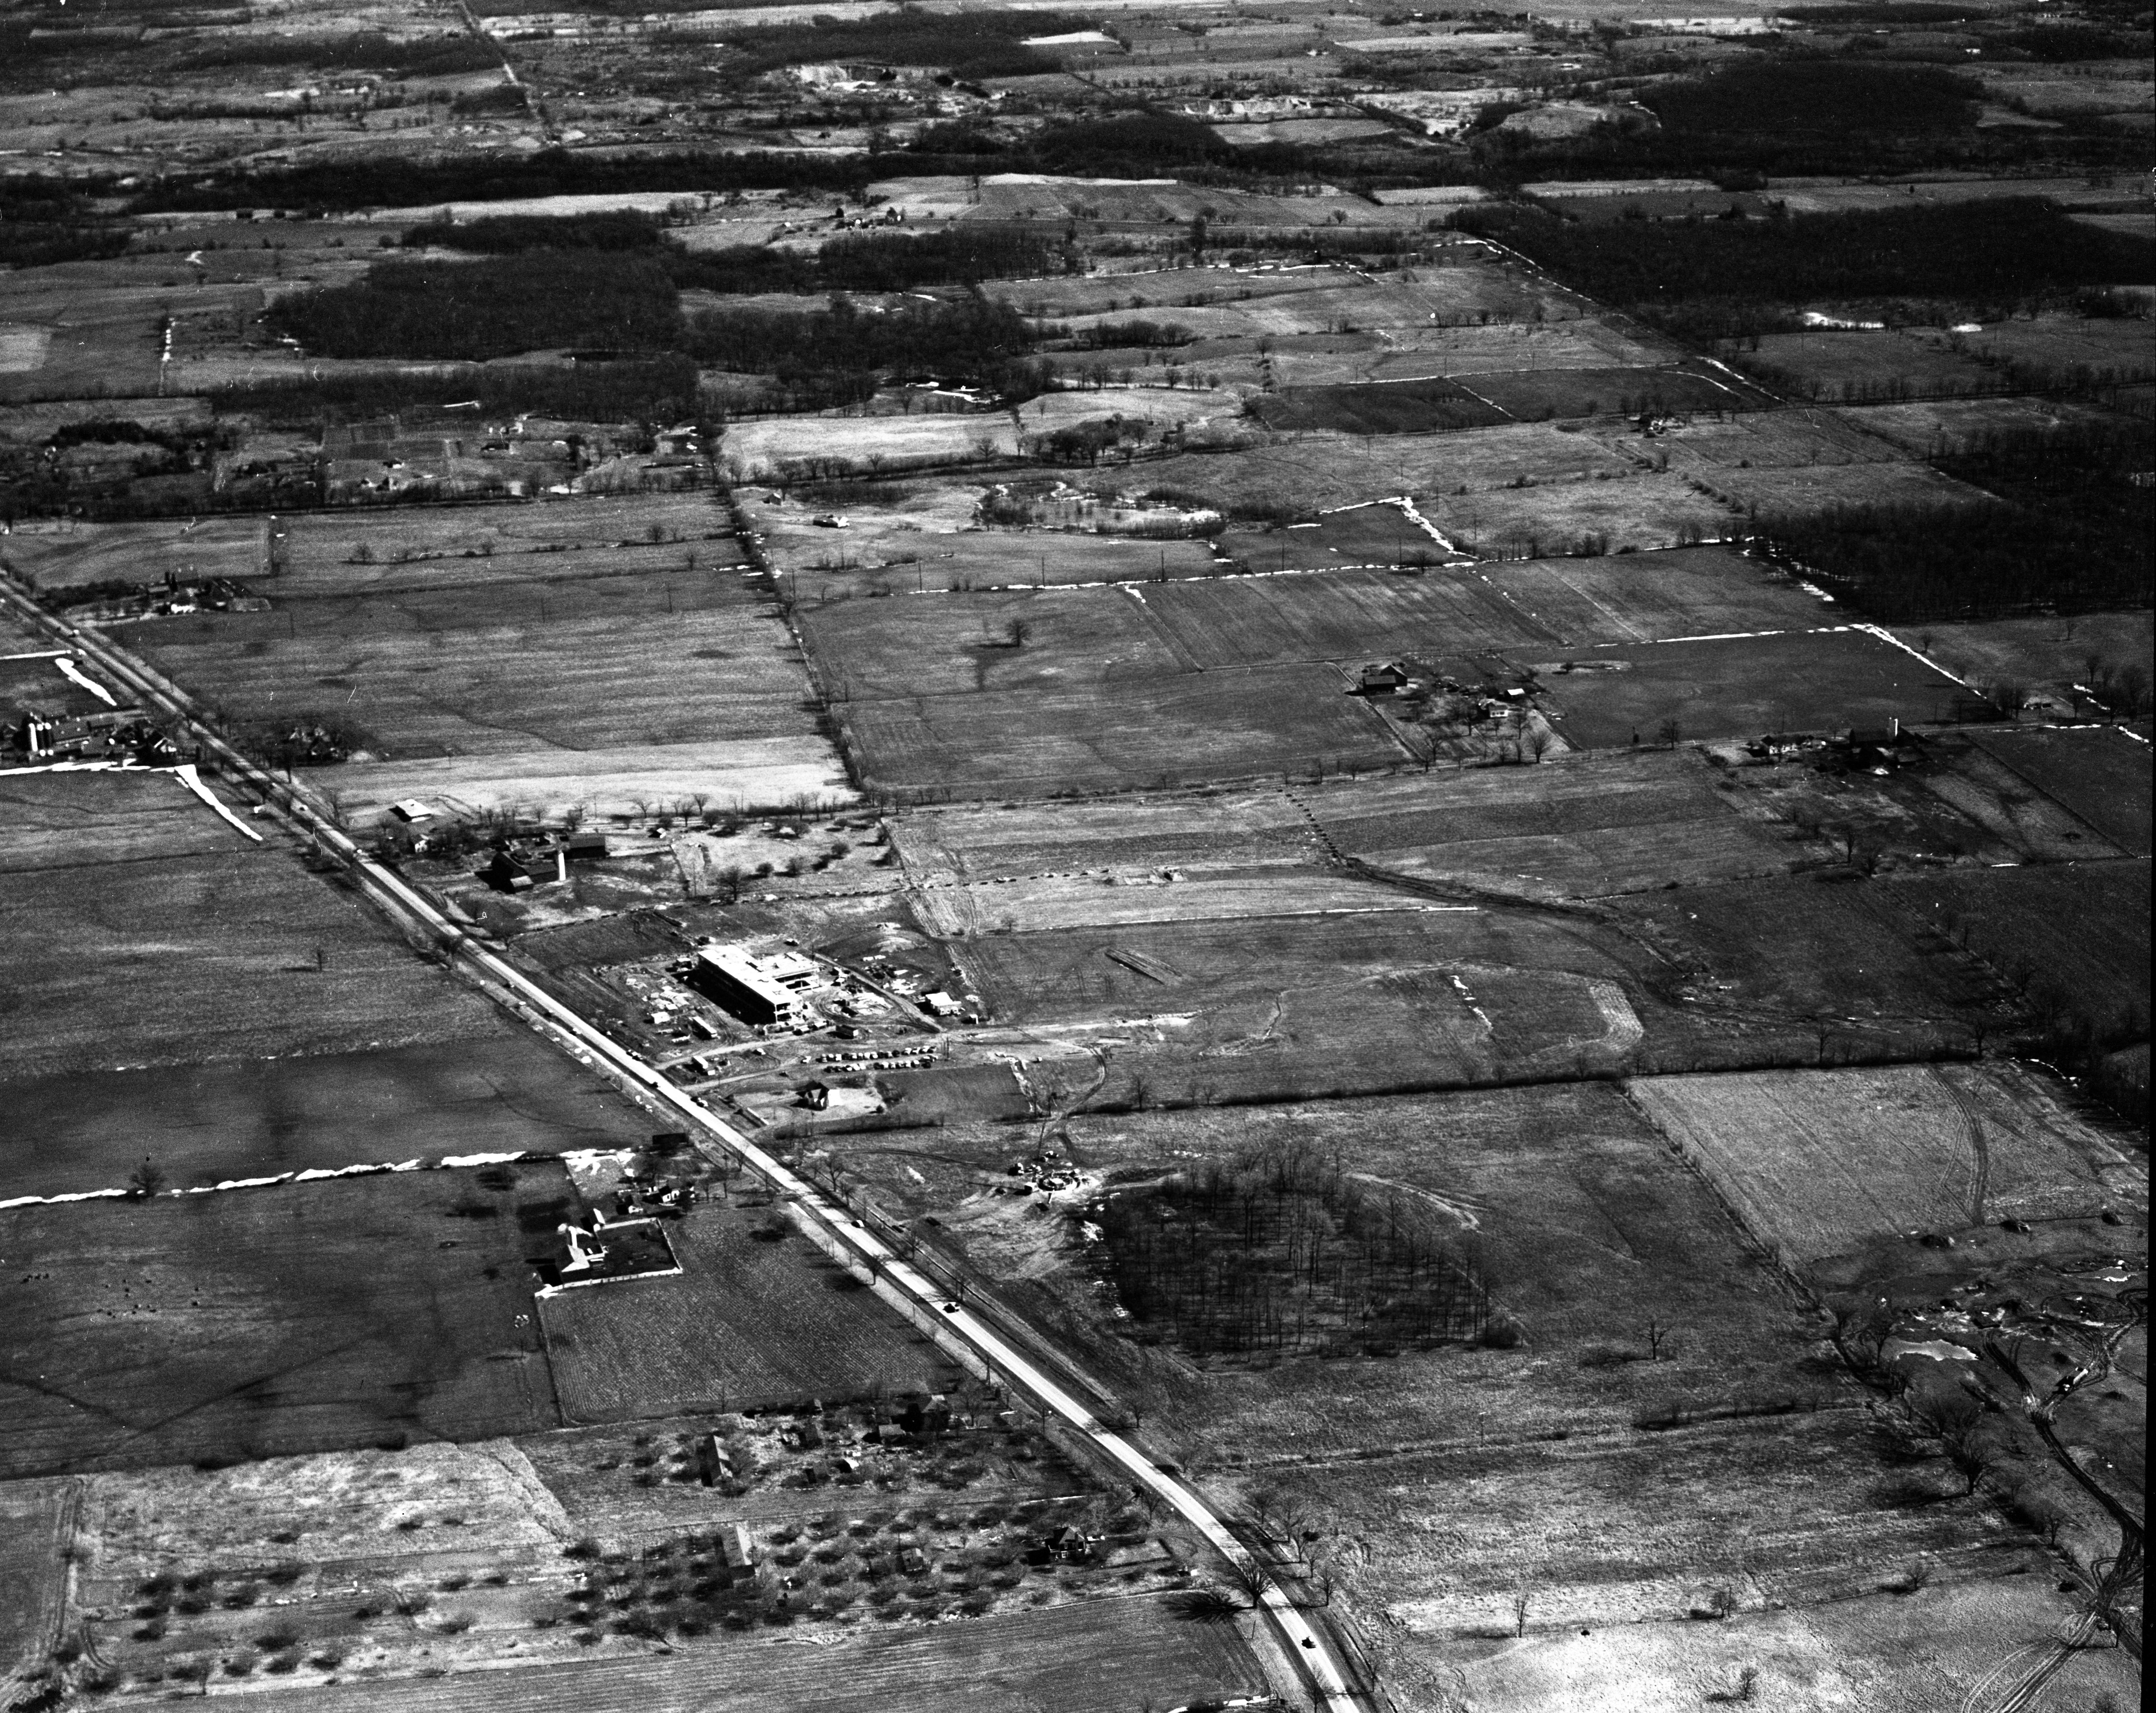 Aerial view of Bendix Building on North Campus, February 1958 image